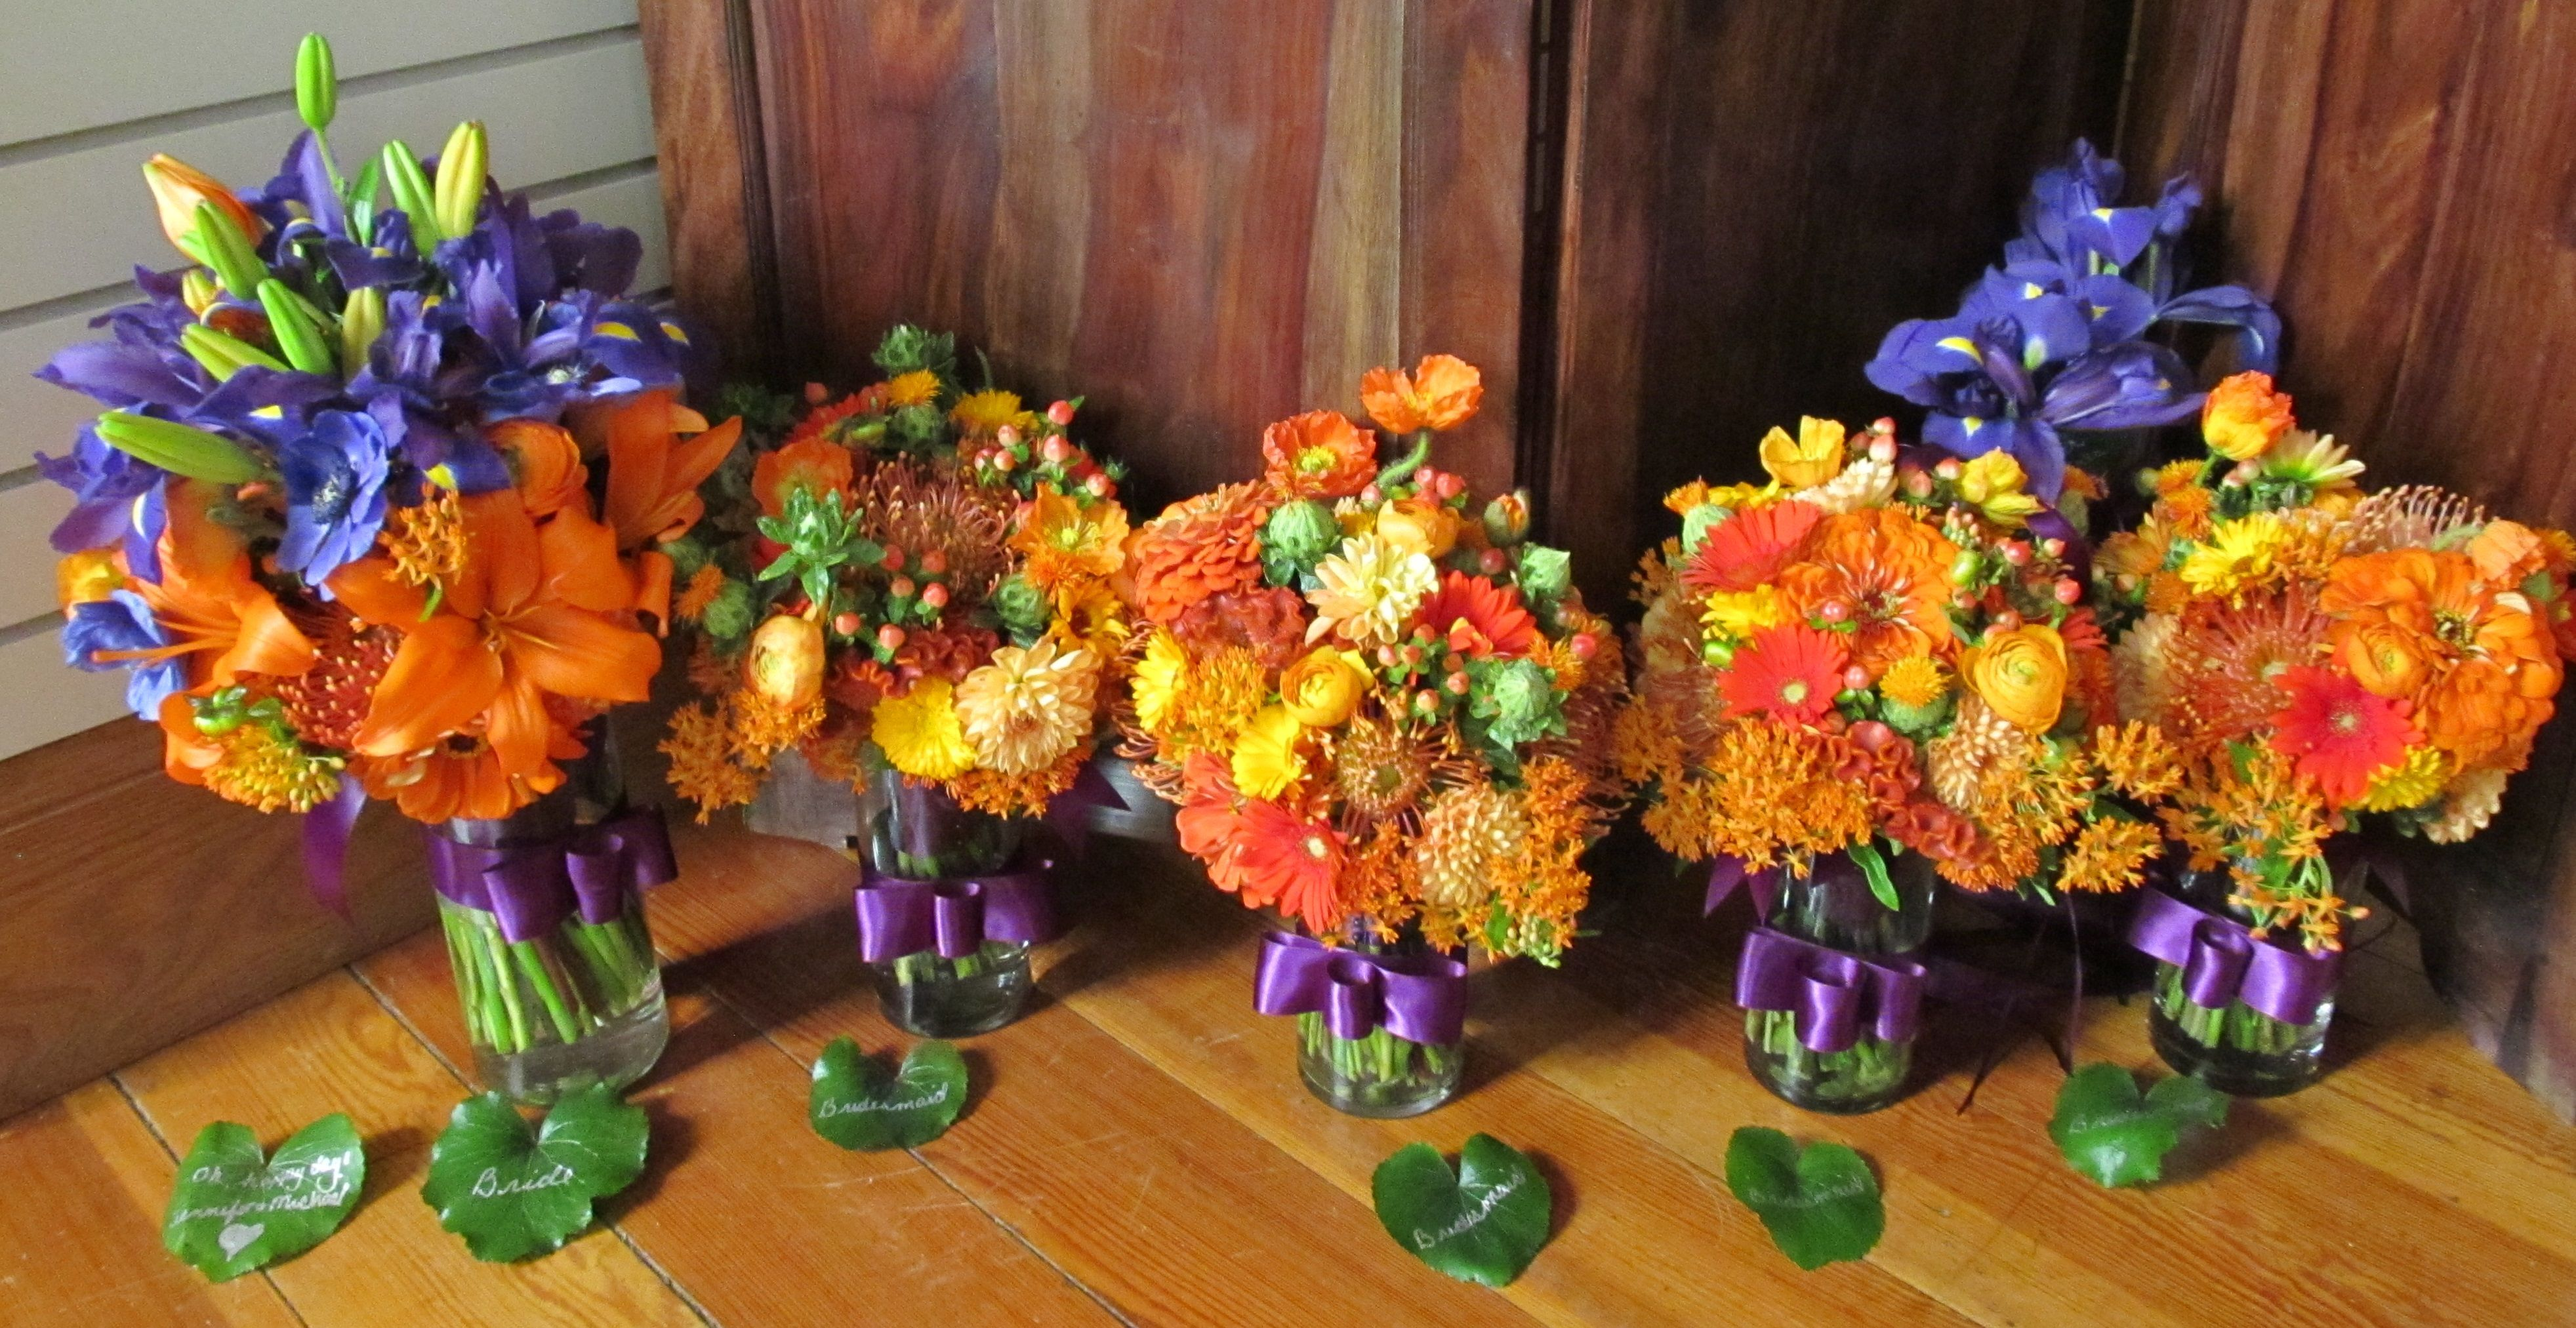 Bouquets of orange lilies, purple iris, purple anemone, orange ranunculus, aslepias, zinnia, pincushion protea, fan celosia, gerbera daisies and calendula by The Peony & The Peacock